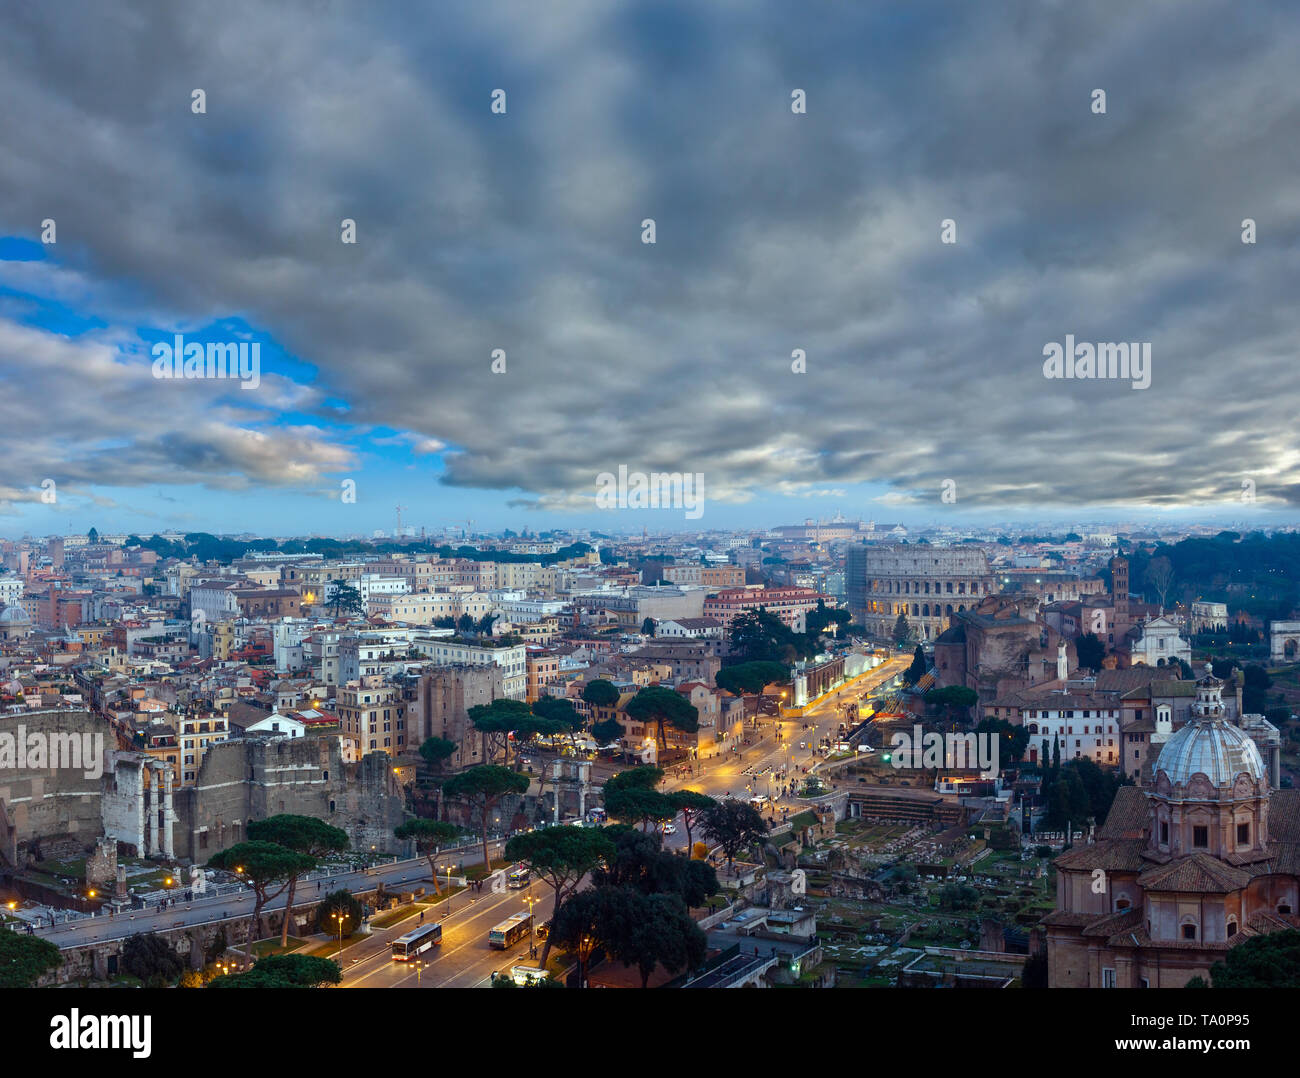 Ruins of Roman Forum. Rome City evening view from II Vittoriano top, Italy. People are unrecognizable. Multi shots stitch panorama. - Stock Image